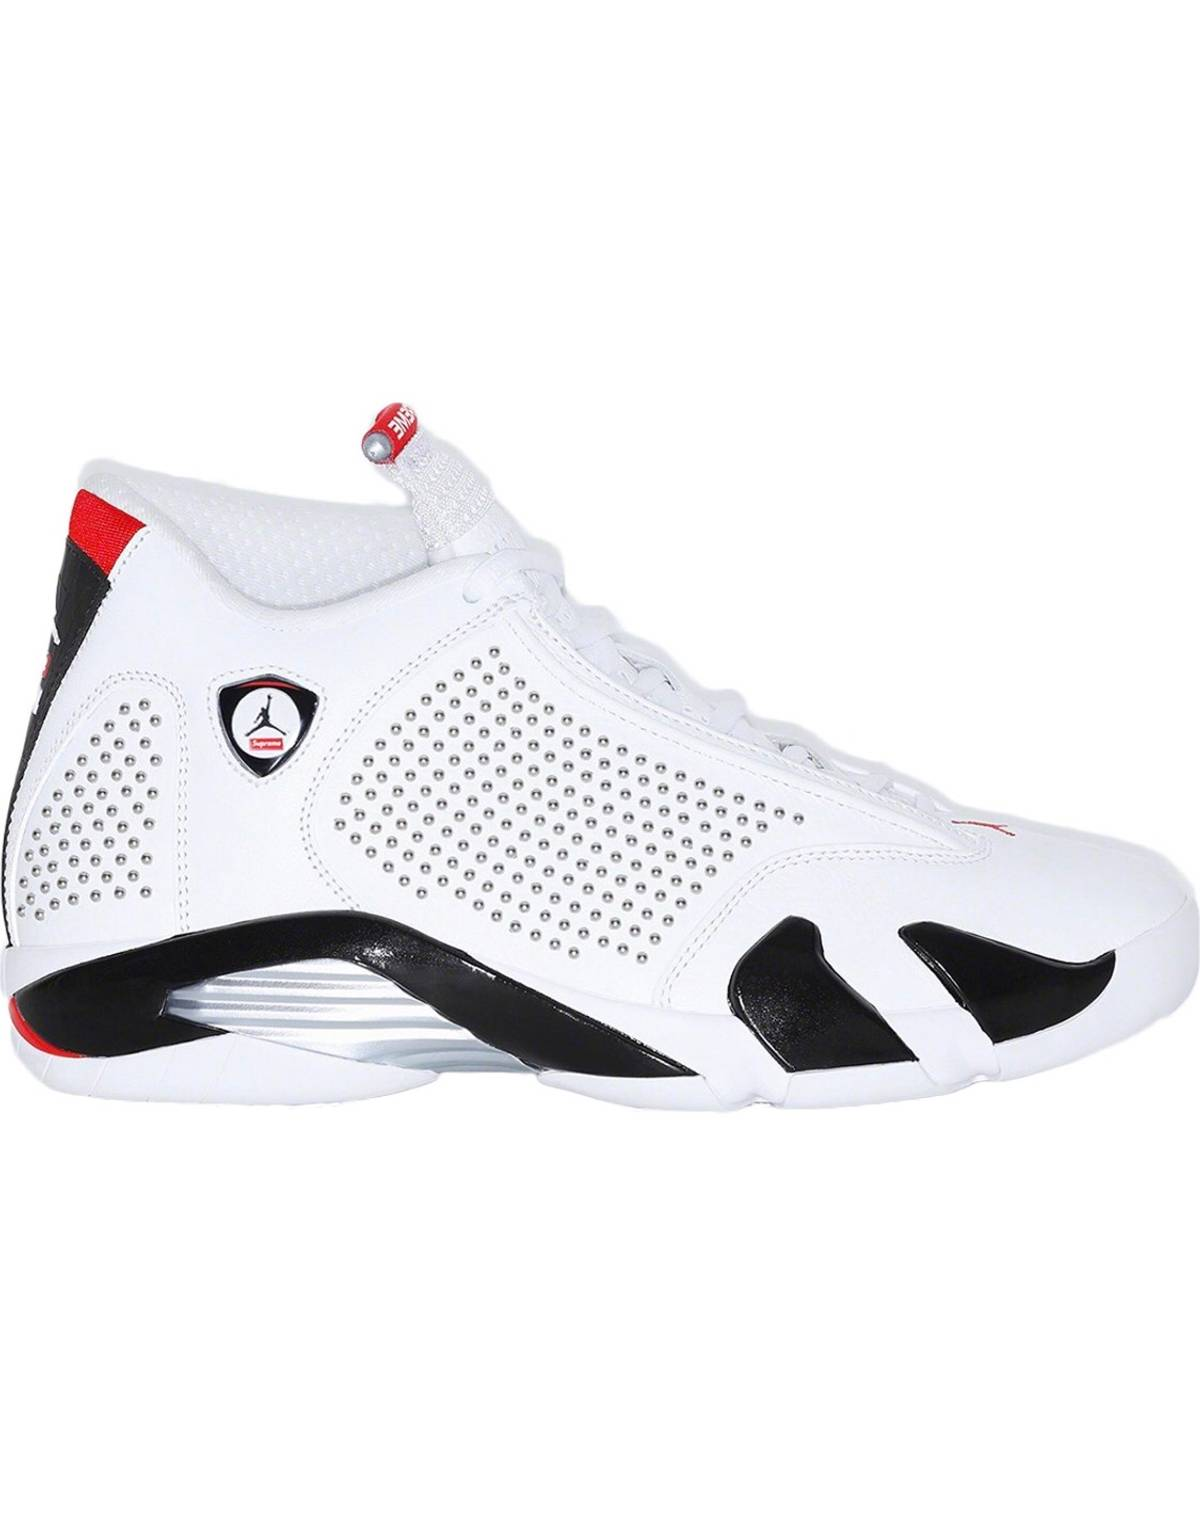 huge selection of 0dfa9 58cbe Jordan Brand × Supreme Supreme Nike Air Jordan 14 White 10 Size 10 $320